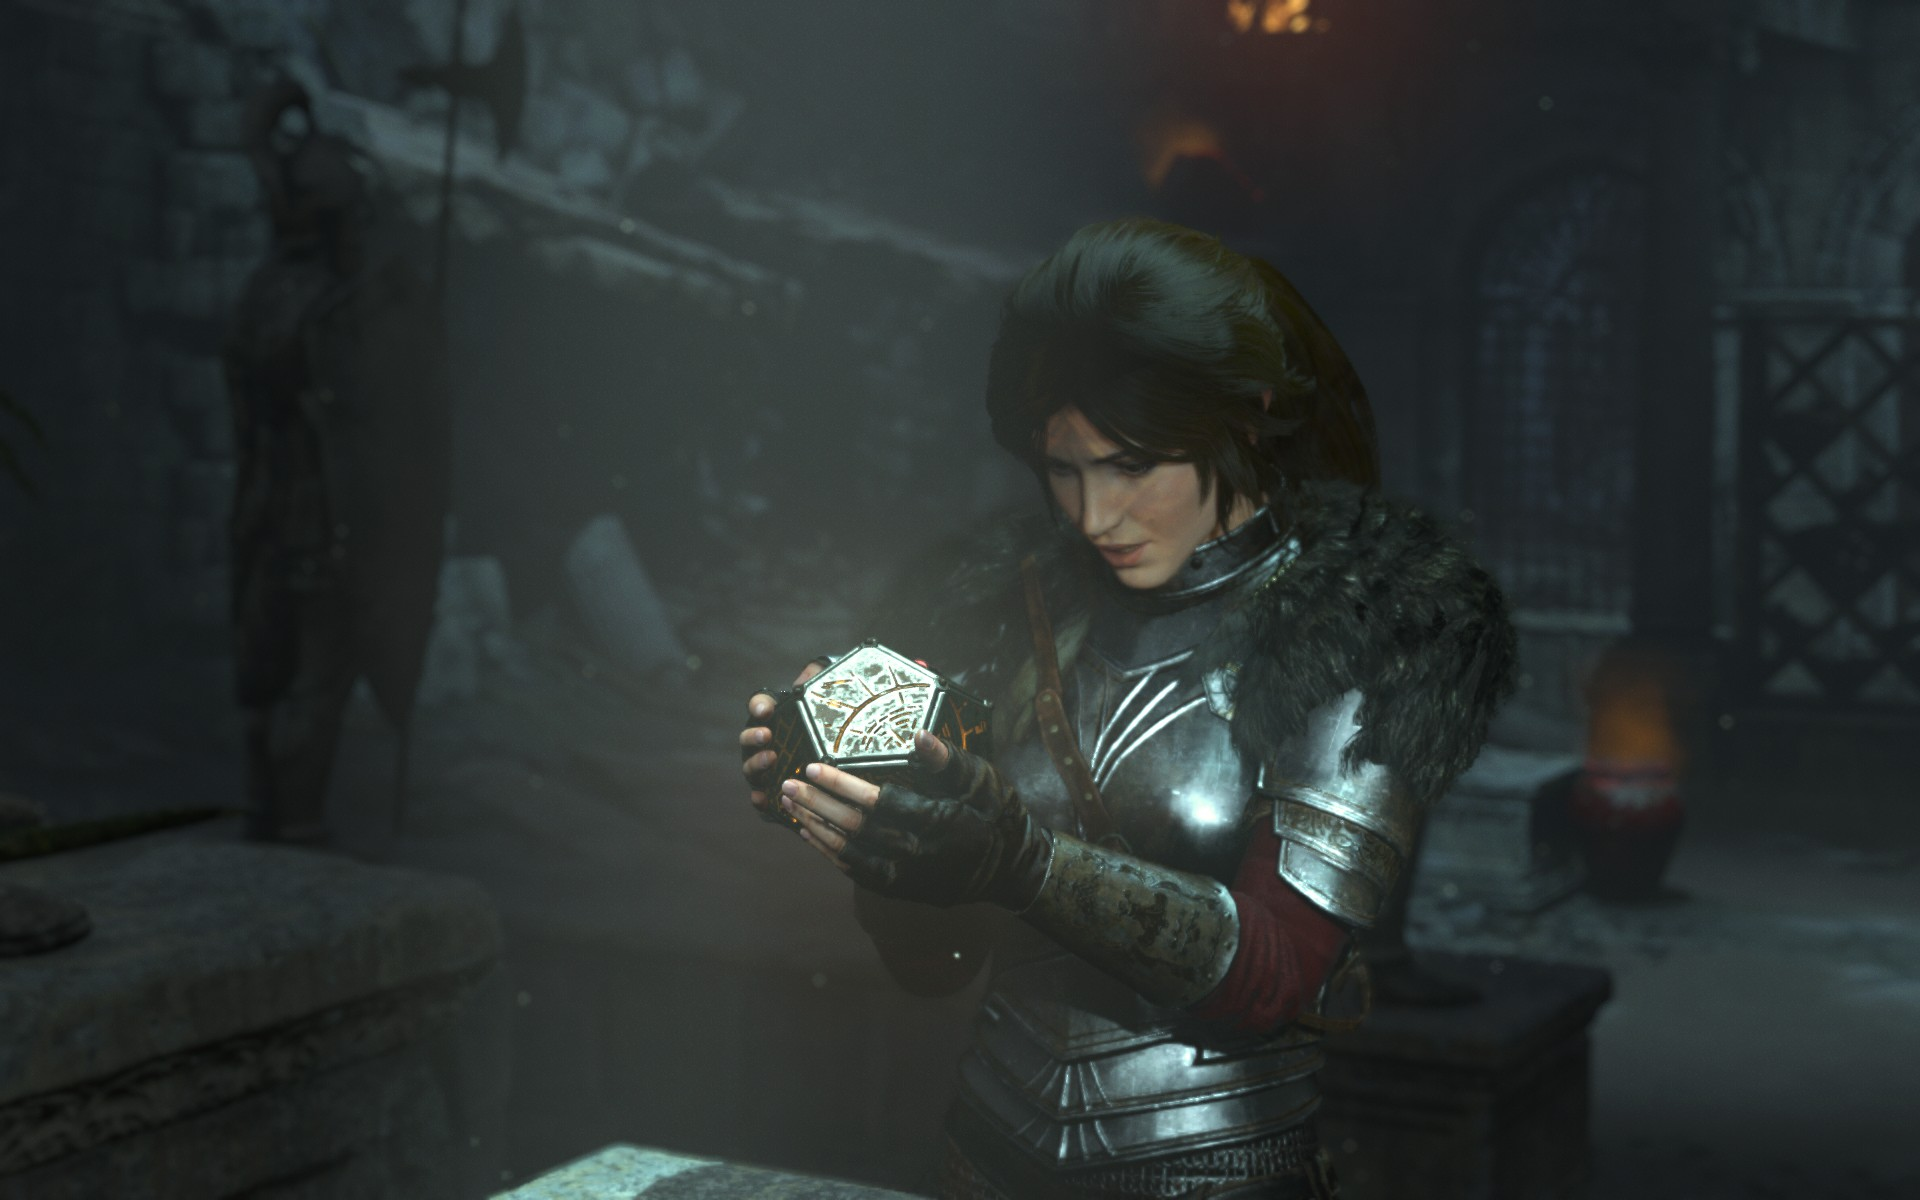 Another thing that they did more of in this game was tombs. There were a lot more tombs to be raided here which welcome because I didn't feel like the first one had enough. There was nothing too brain-twisty in RotTR either, but it was still nice to have more.